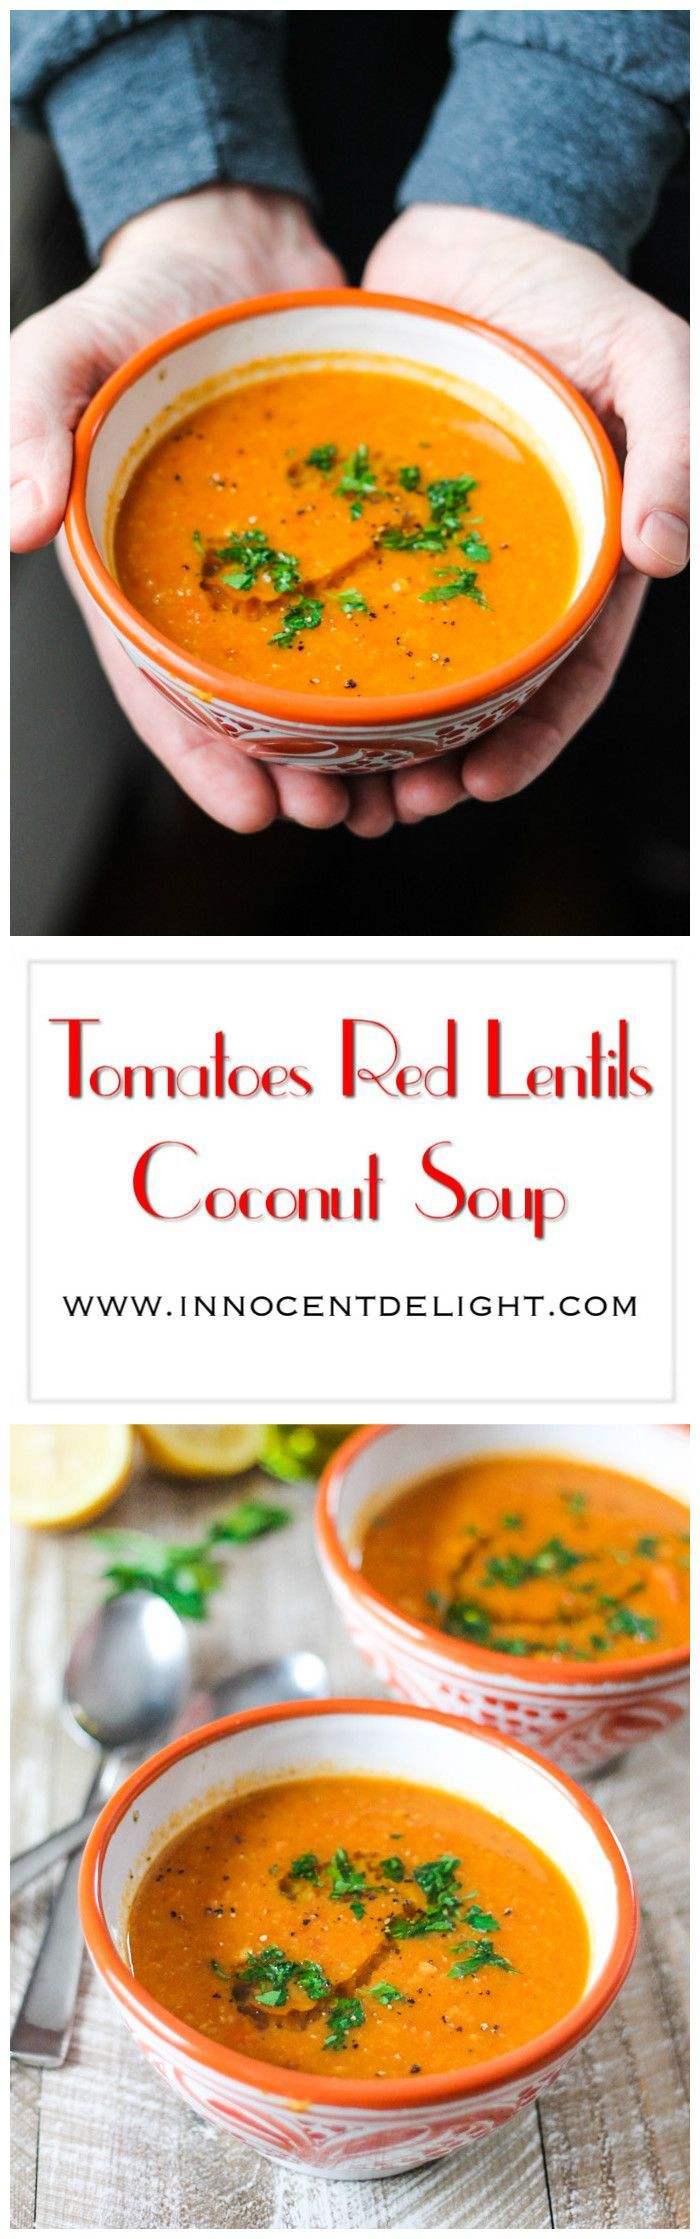 Tomatoes Red Lentils Coconut Soup – perfect healthy, vegan, gluten free treat on freezing cold winter days